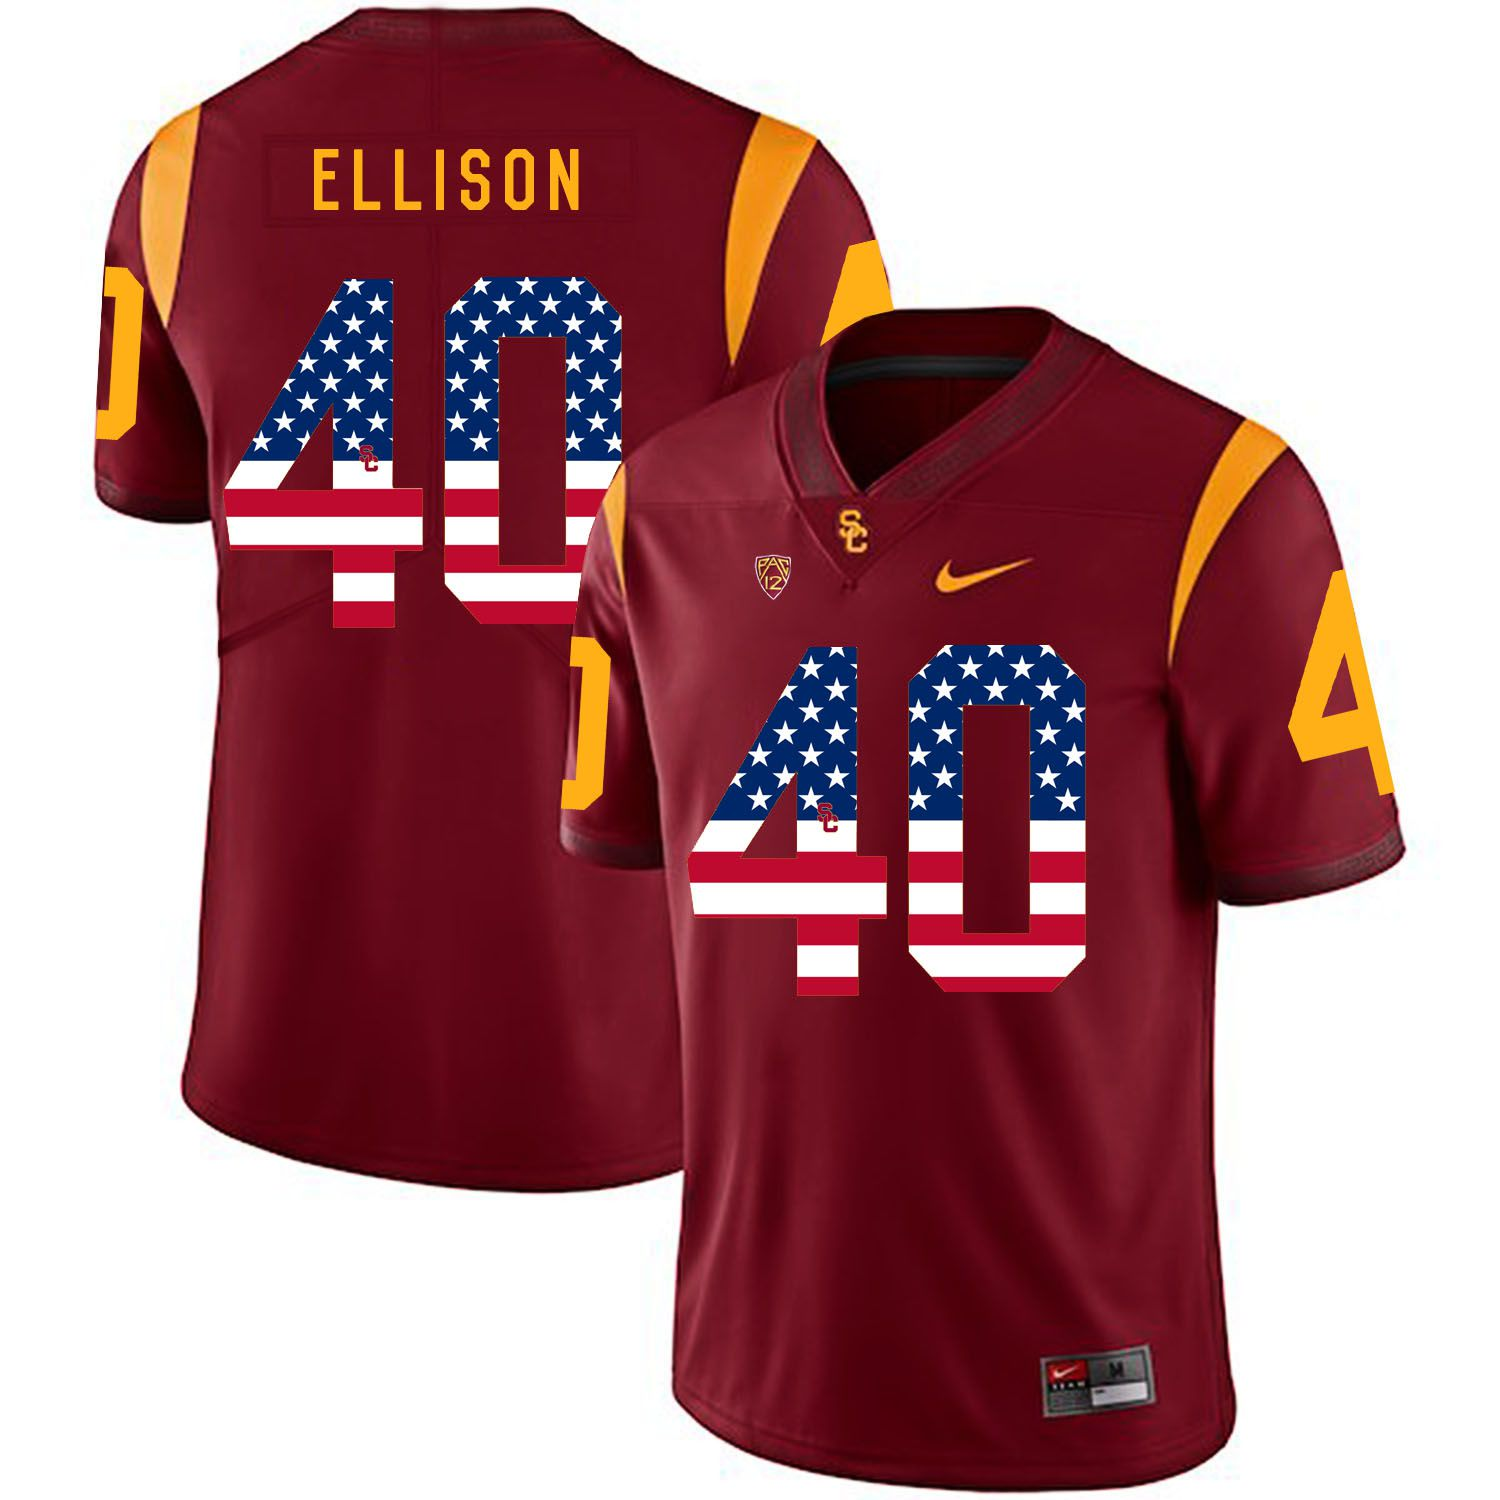 Men USC Trojans 40 Ellison Red Flag Customized NCAA Jerseys